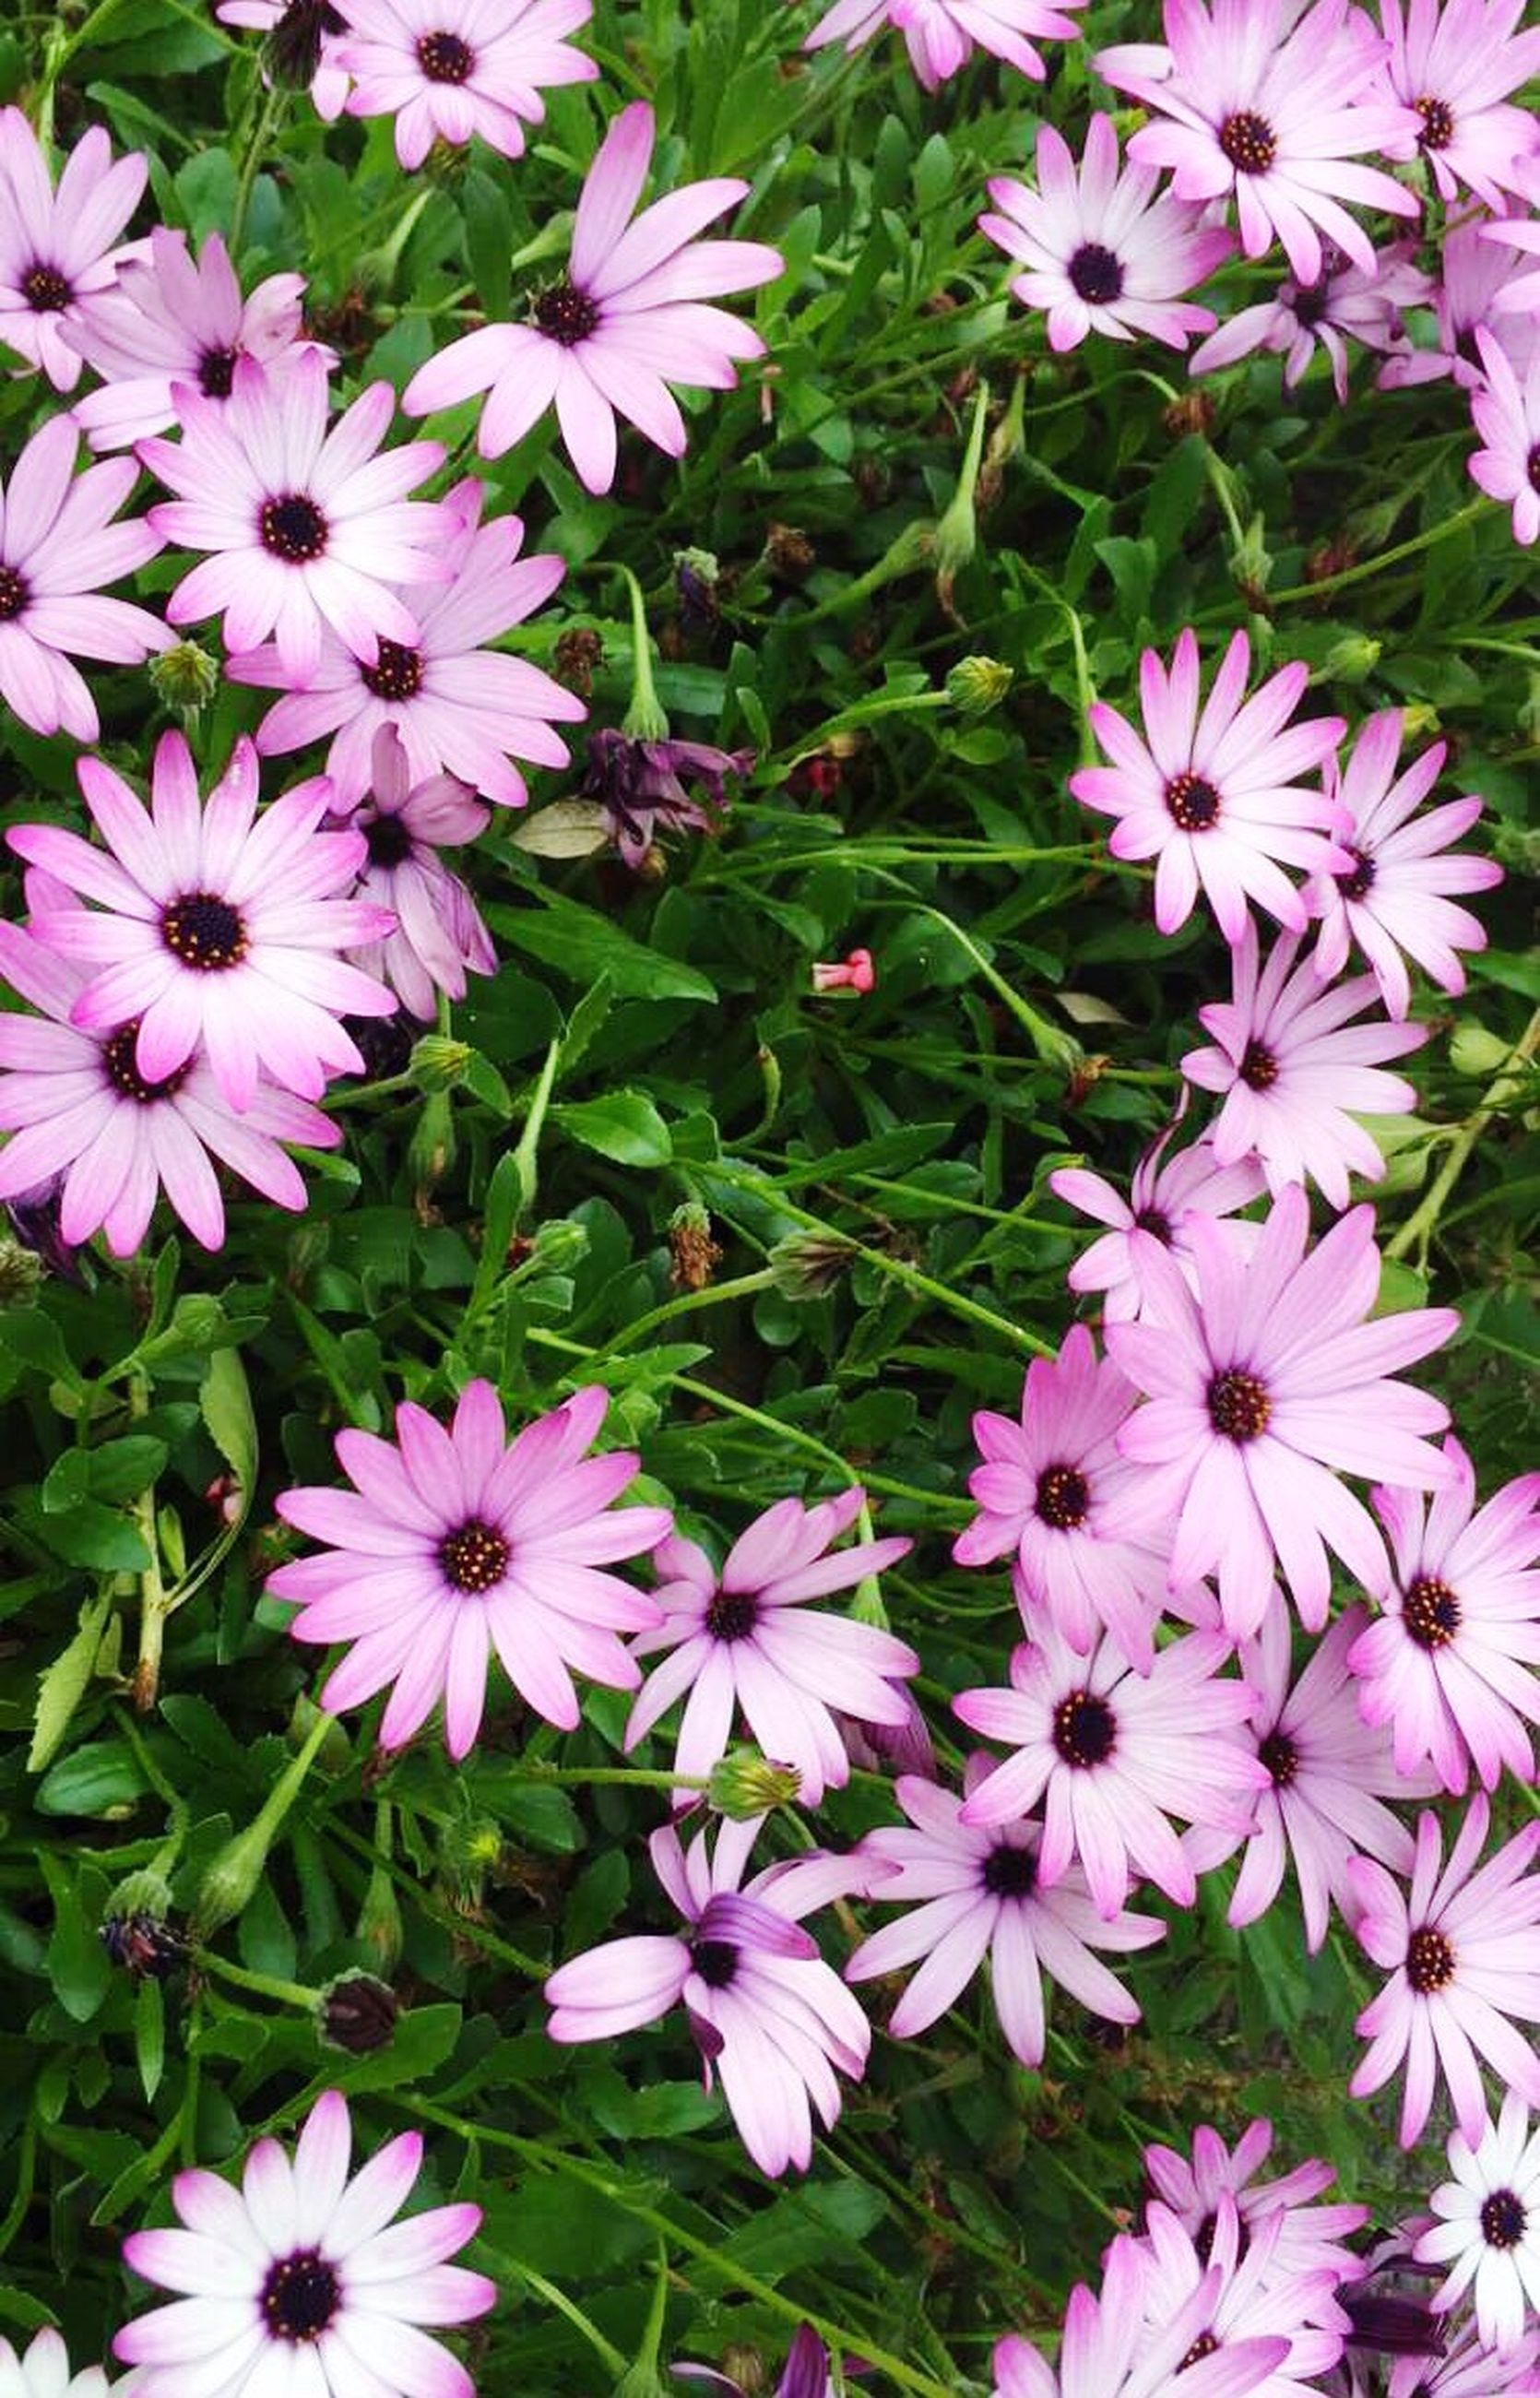 flower, freshness, fragility, petal, growth, beauty in nature, pink color, flower head, blooming, nature, plant, high angle view, in bloom, close-up, purple, field, pink, park - man made space, blossom, no people